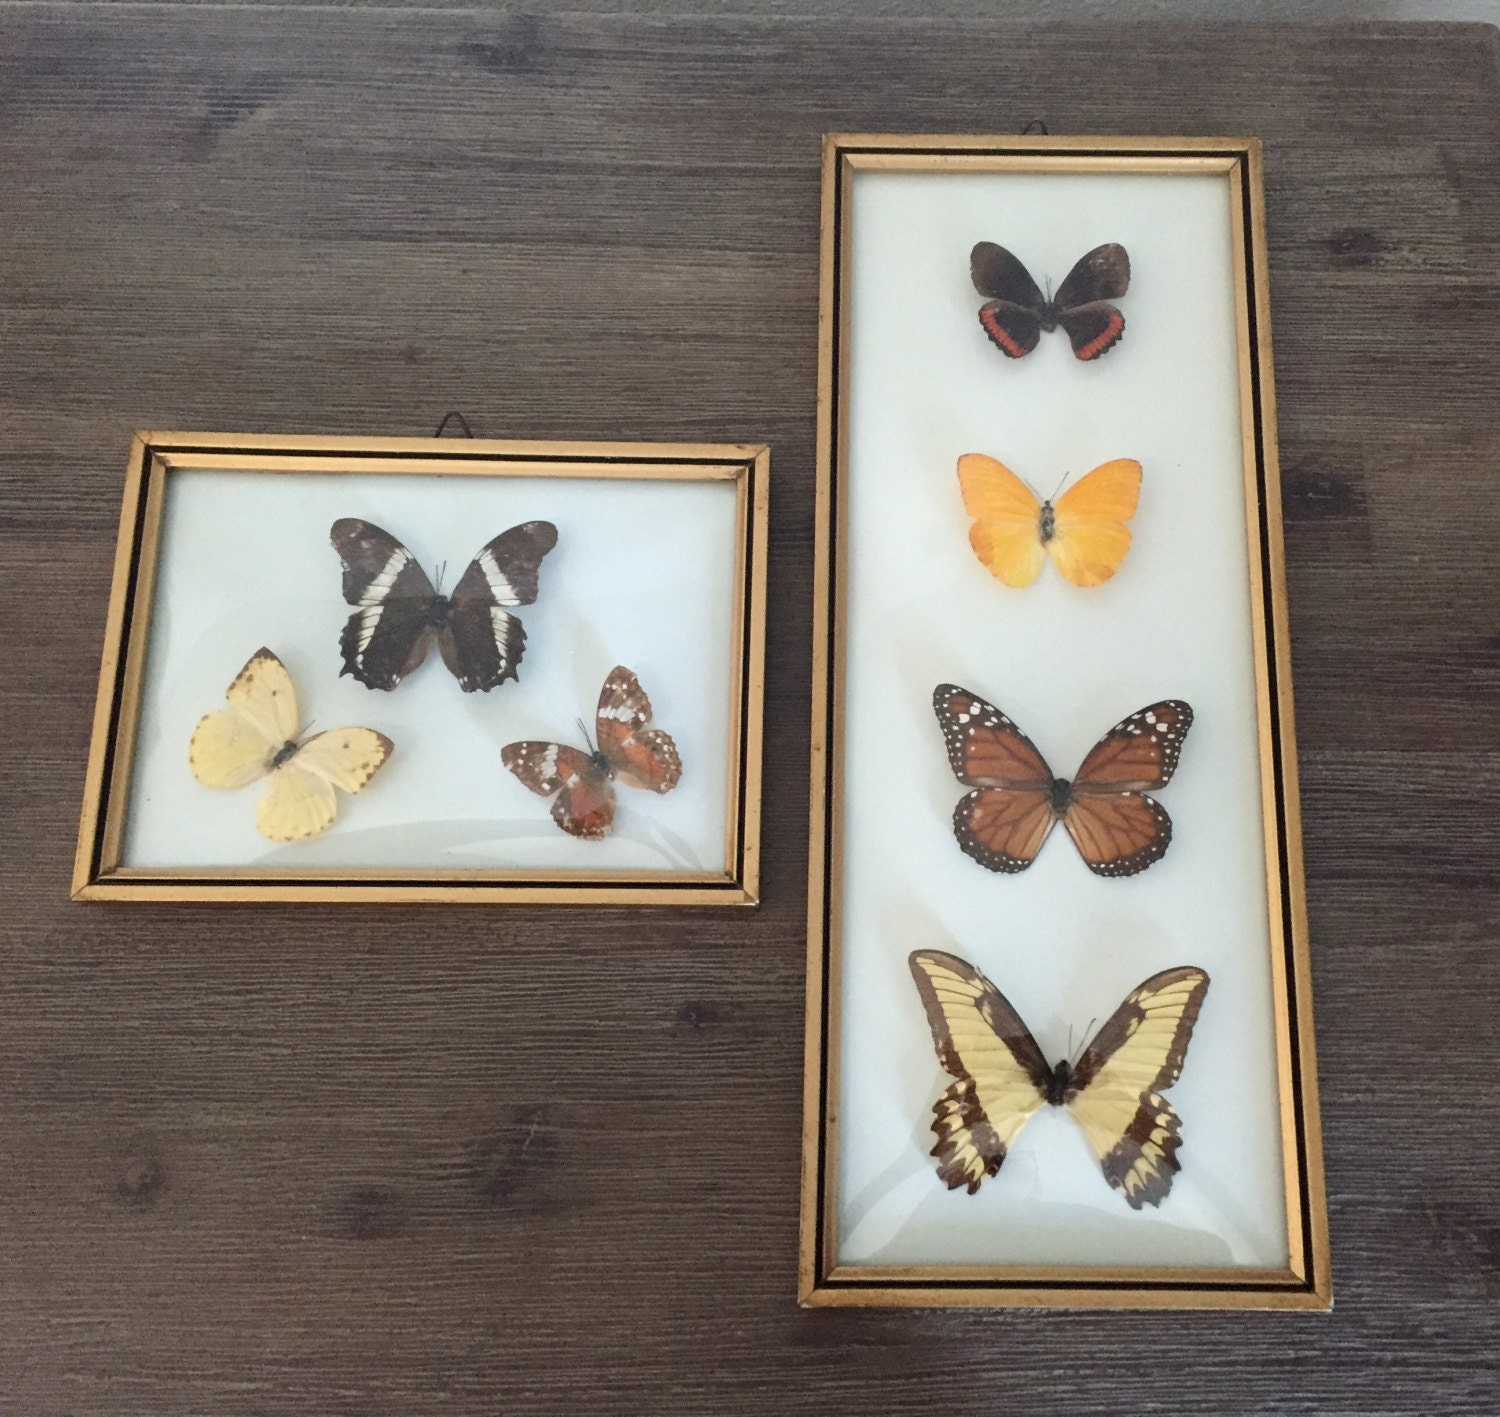 Butterfly wall art framed curved glass mounted butterflies for Butterfly wall art